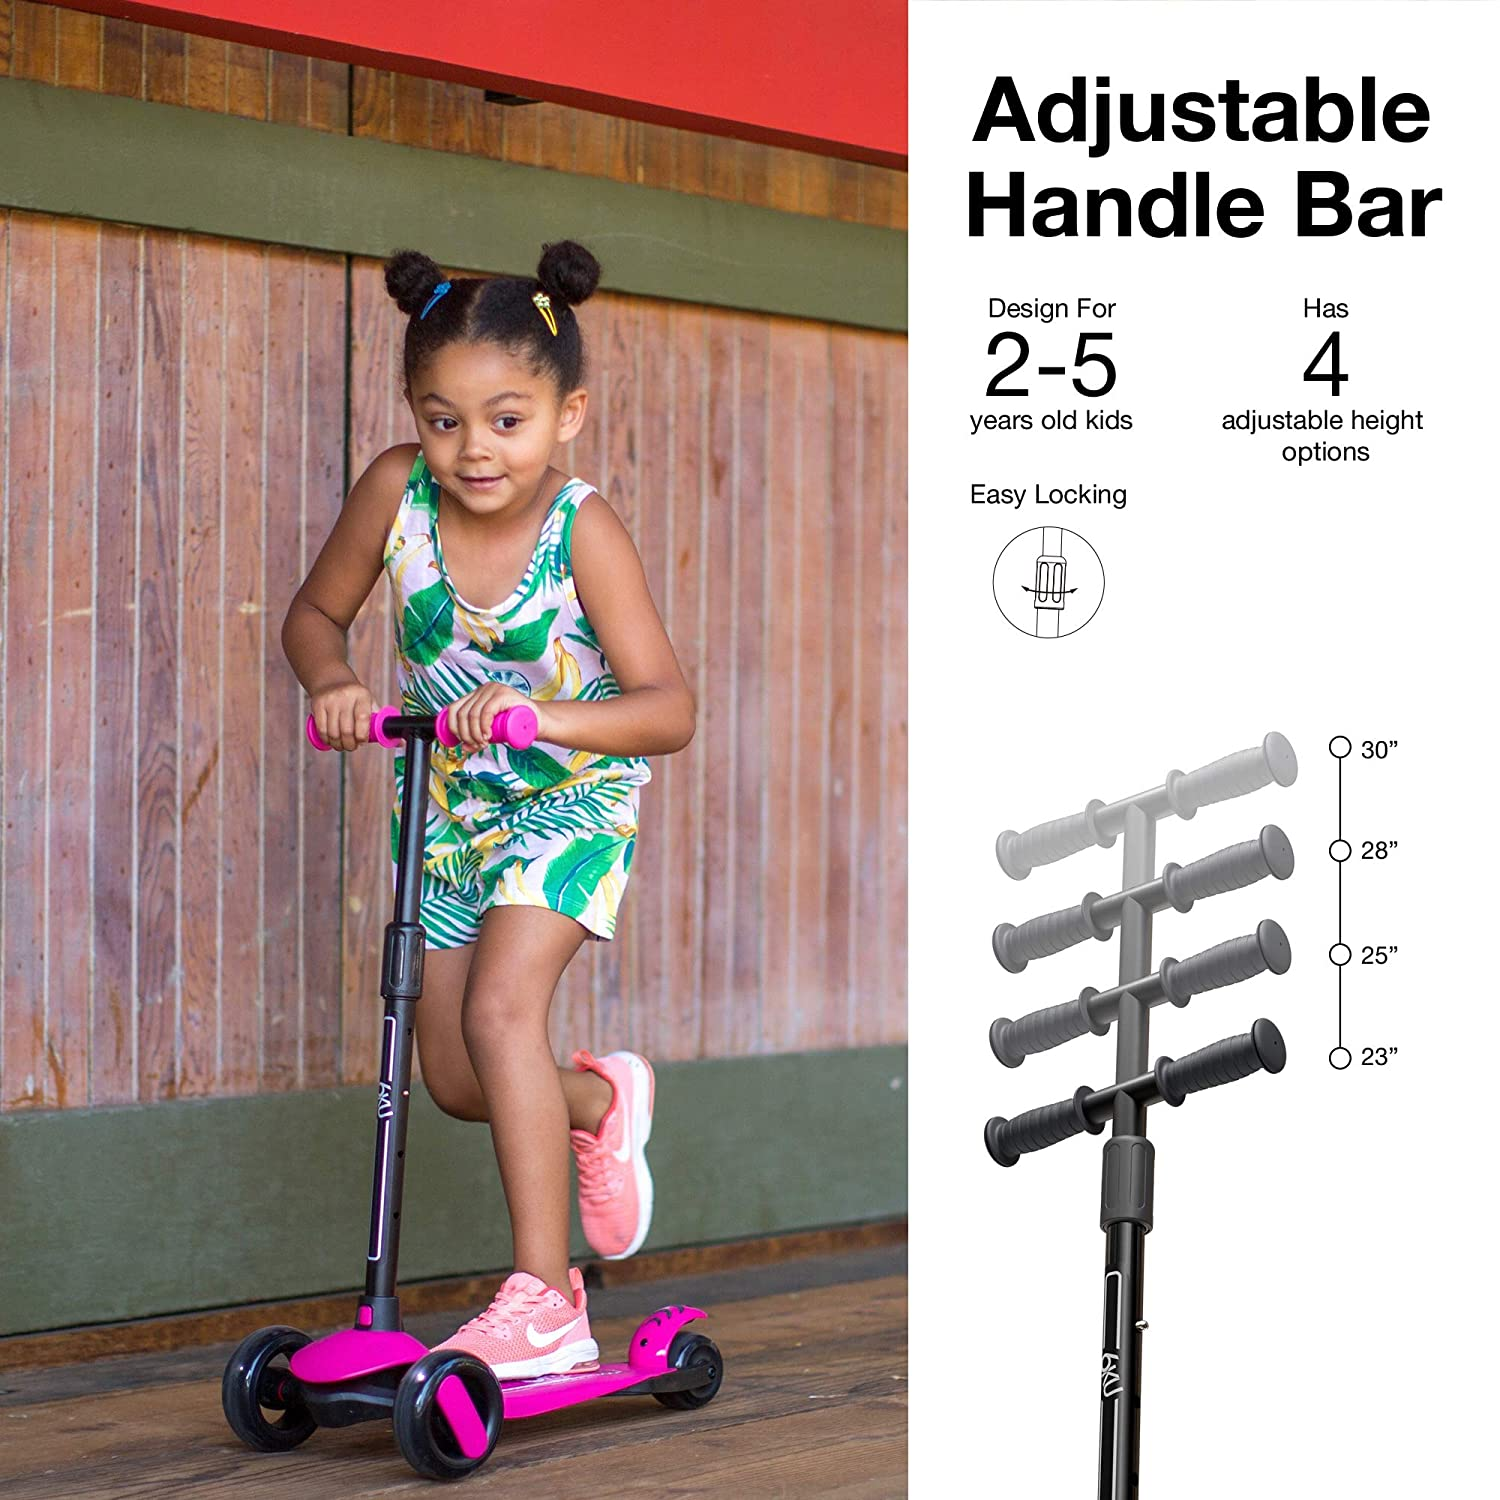 6KU 3 Wheels Kick Scooter for Kids and Toddlers Girls /& Boys Learn to Steer with Extra-Wide PU LED Flashing Wheels for Children from 2 to 5 Year-Old. Adjustable Height